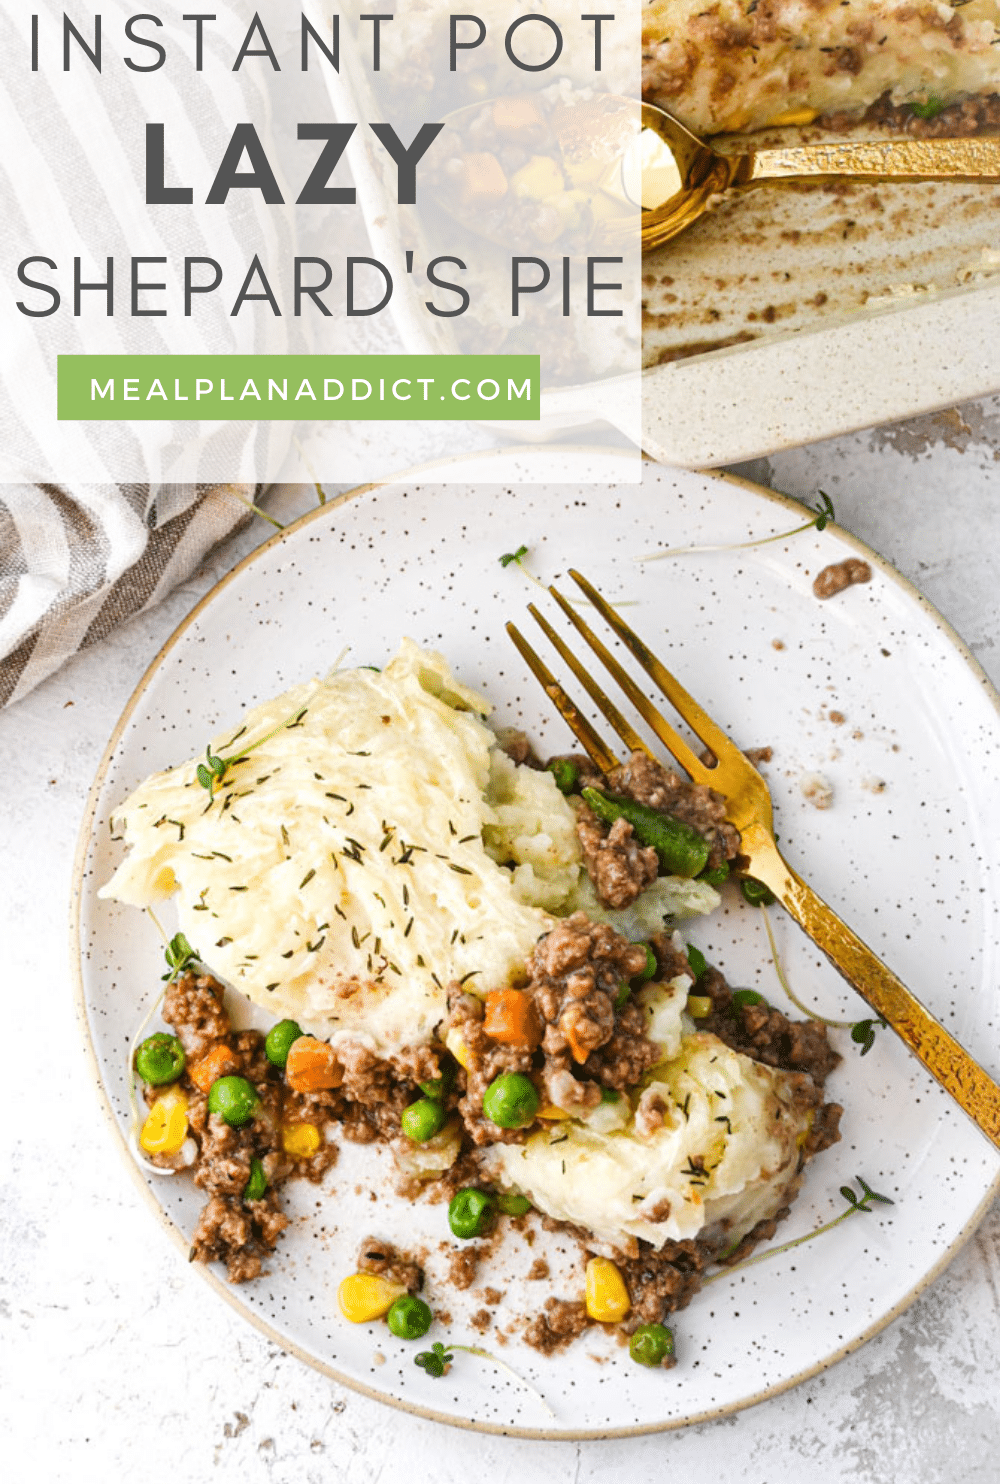 Instant Pot Lazy Shepards Pie Your Family Will Love | Meal Plan Addict